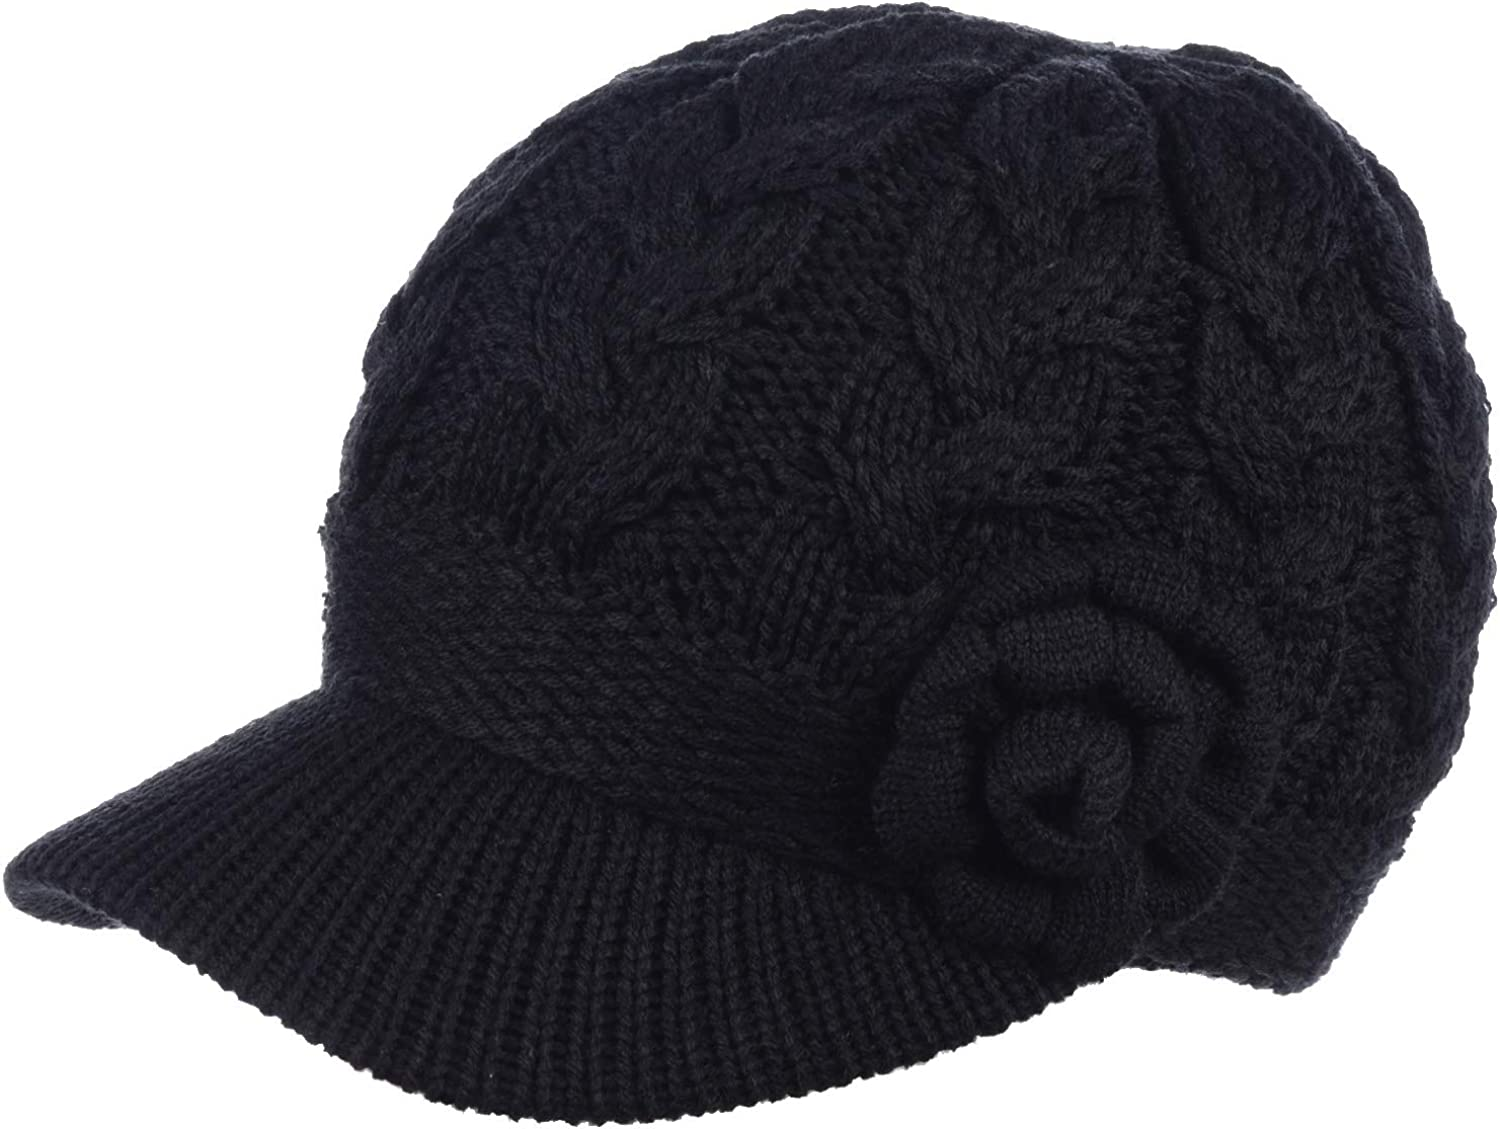 BYOS Womens Winter Chic Cable Warm Clearance SALE Limited time Knit Lined Crochet Fleece A surprise price is realized Hat